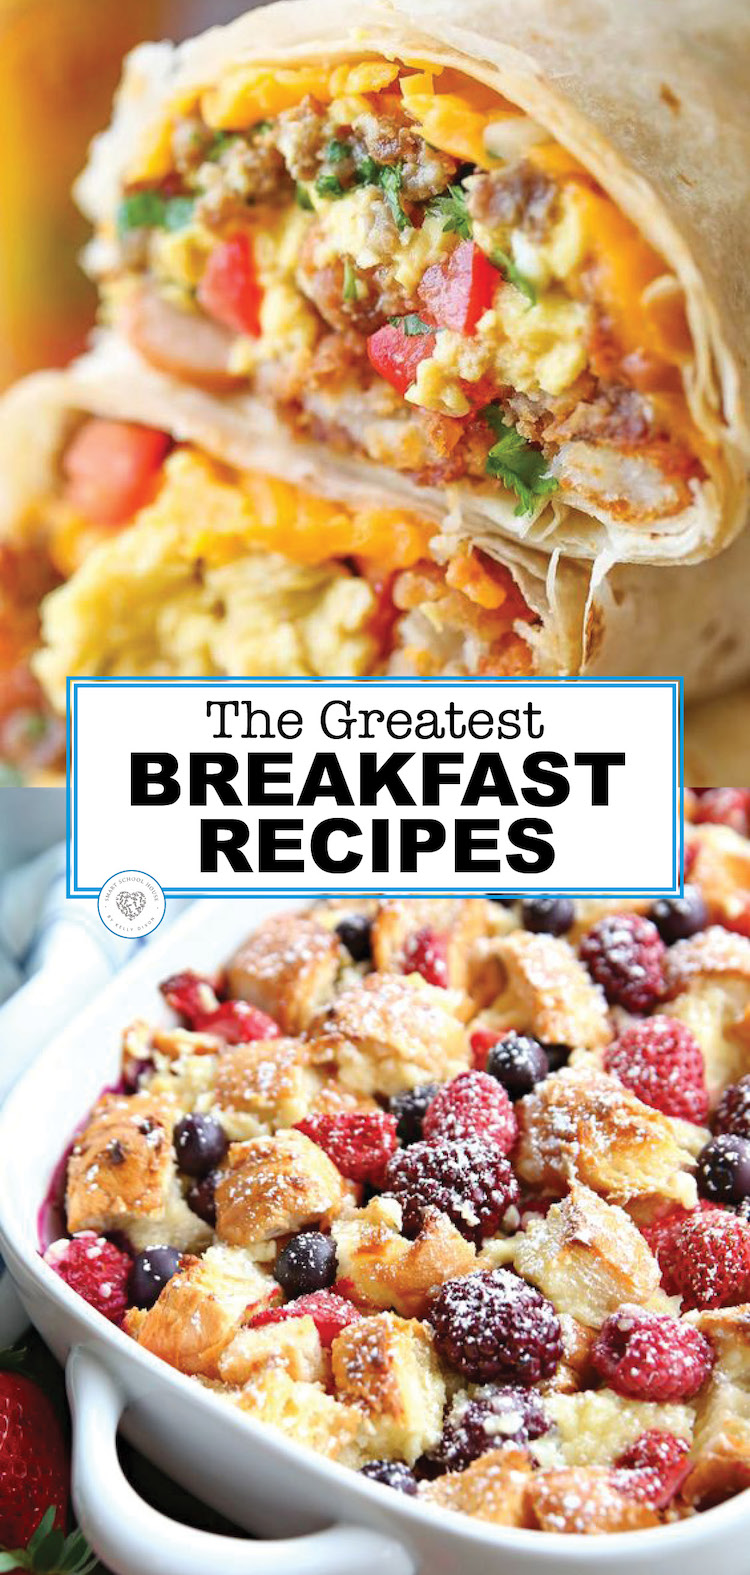 The Greatest Breakfast Recipes